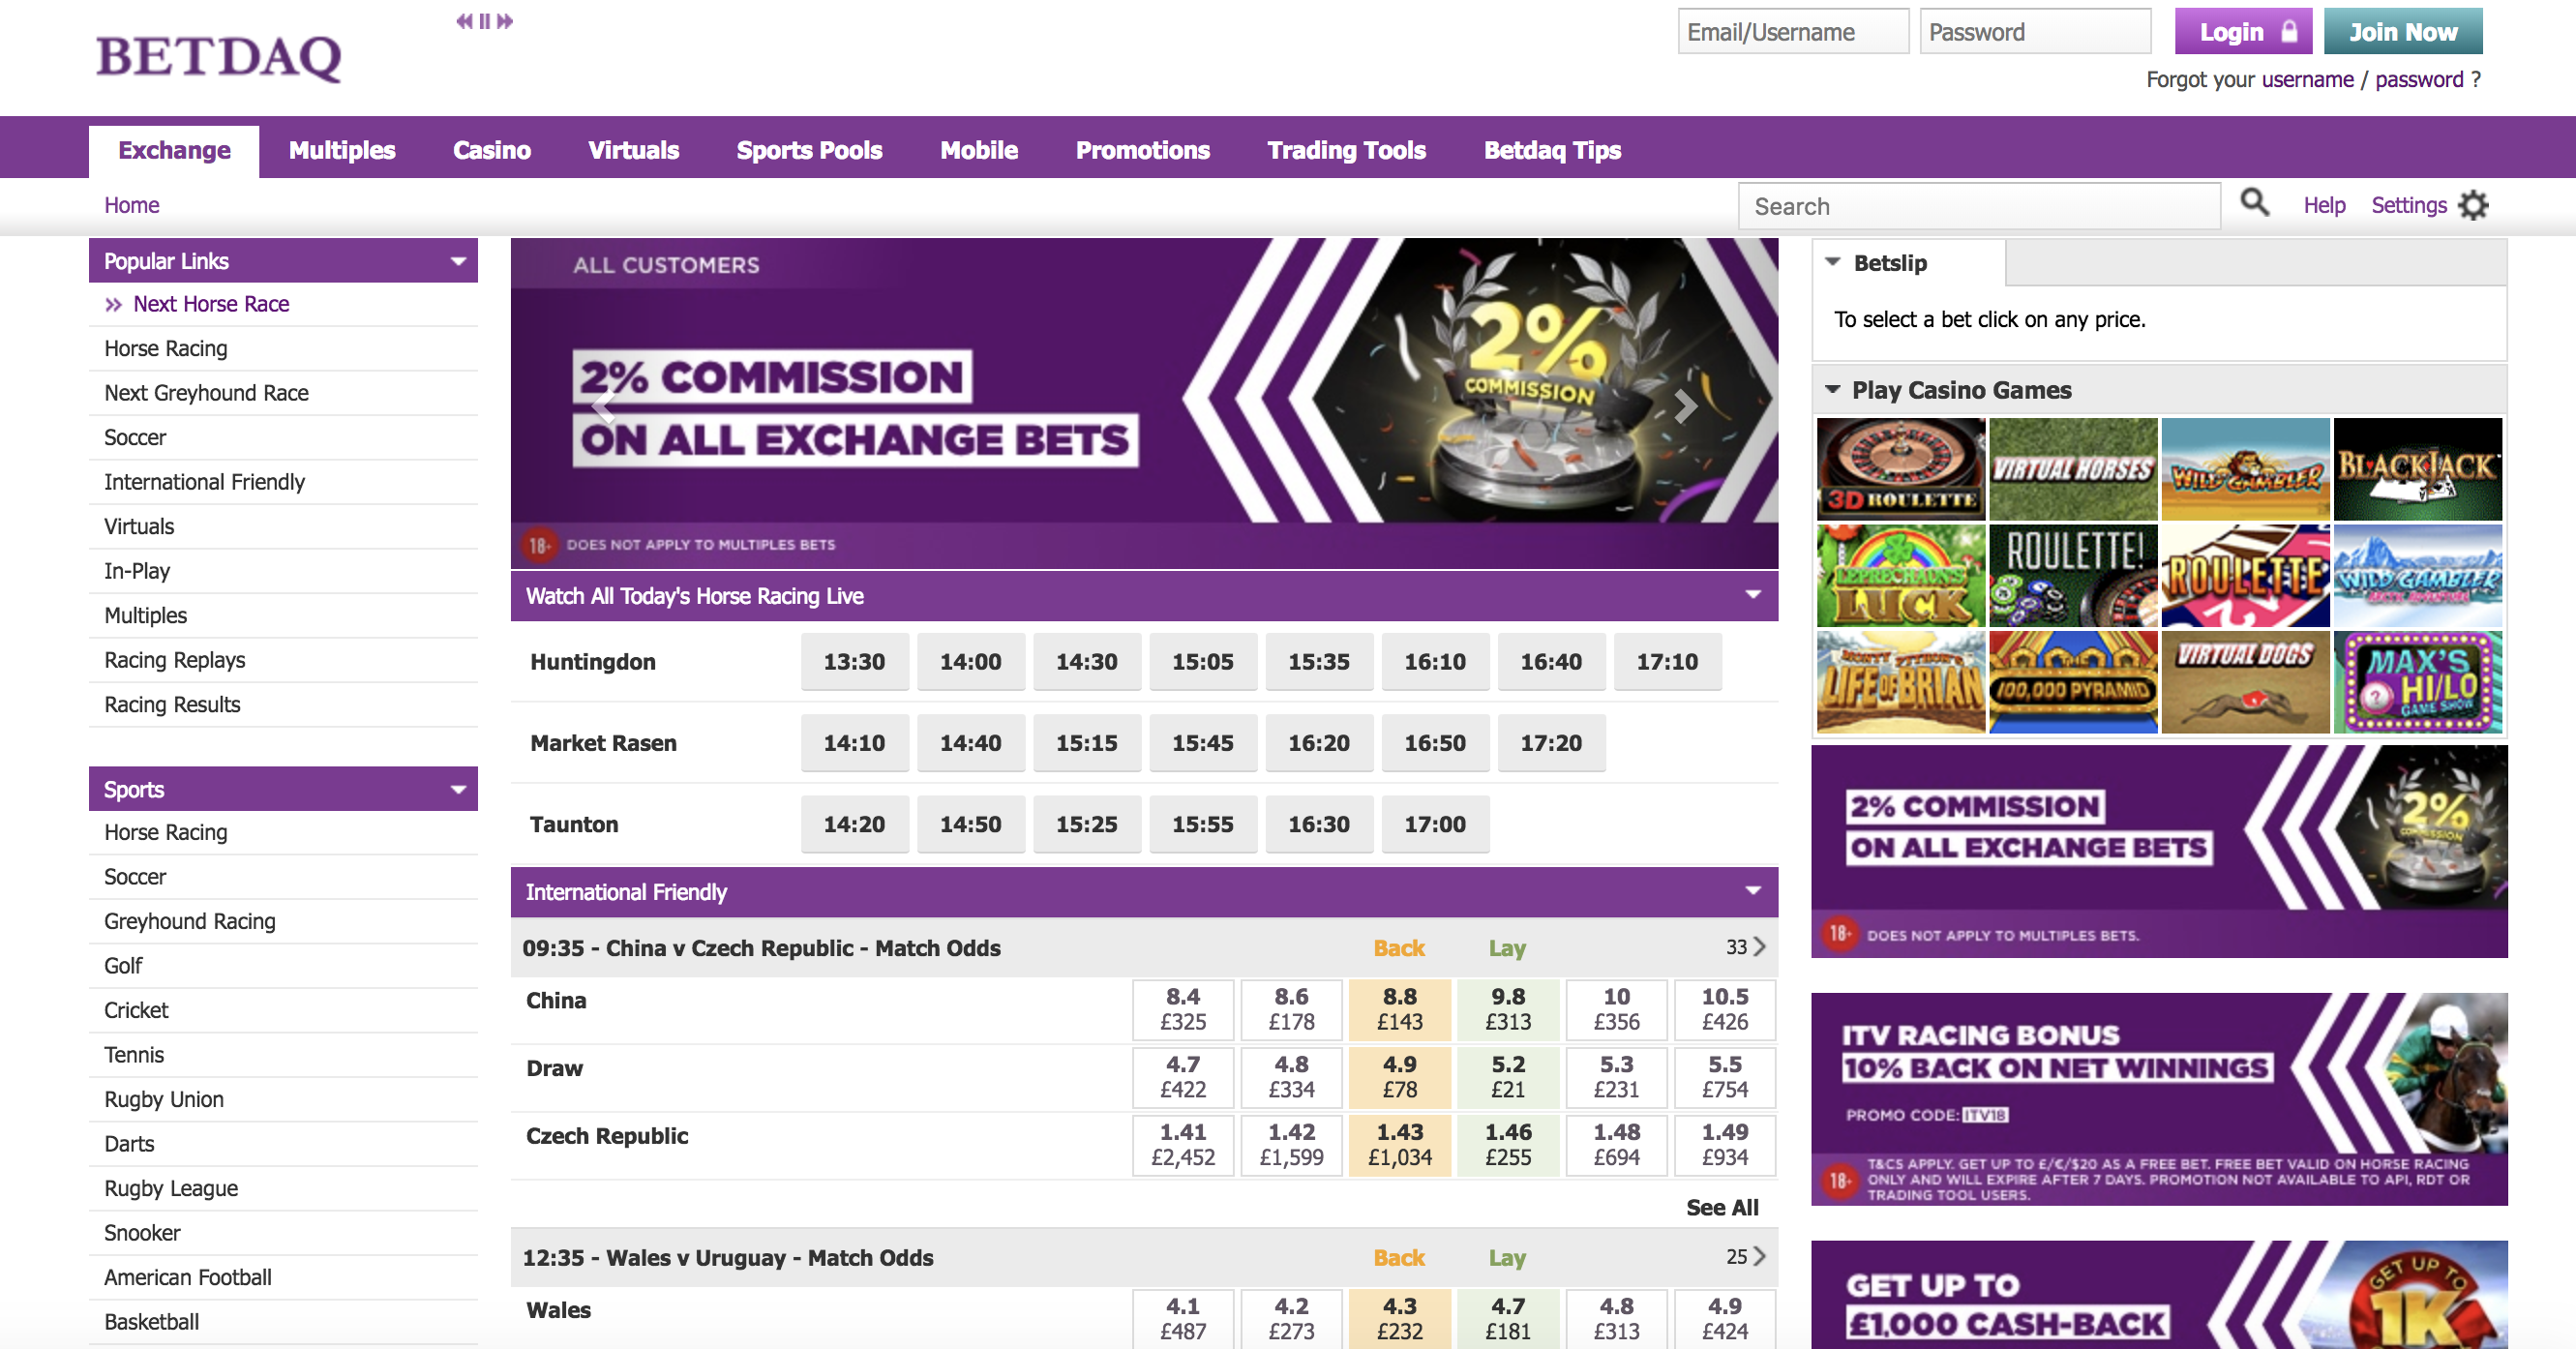 Fed up with Betfair? Here are three sites similar to Betfair